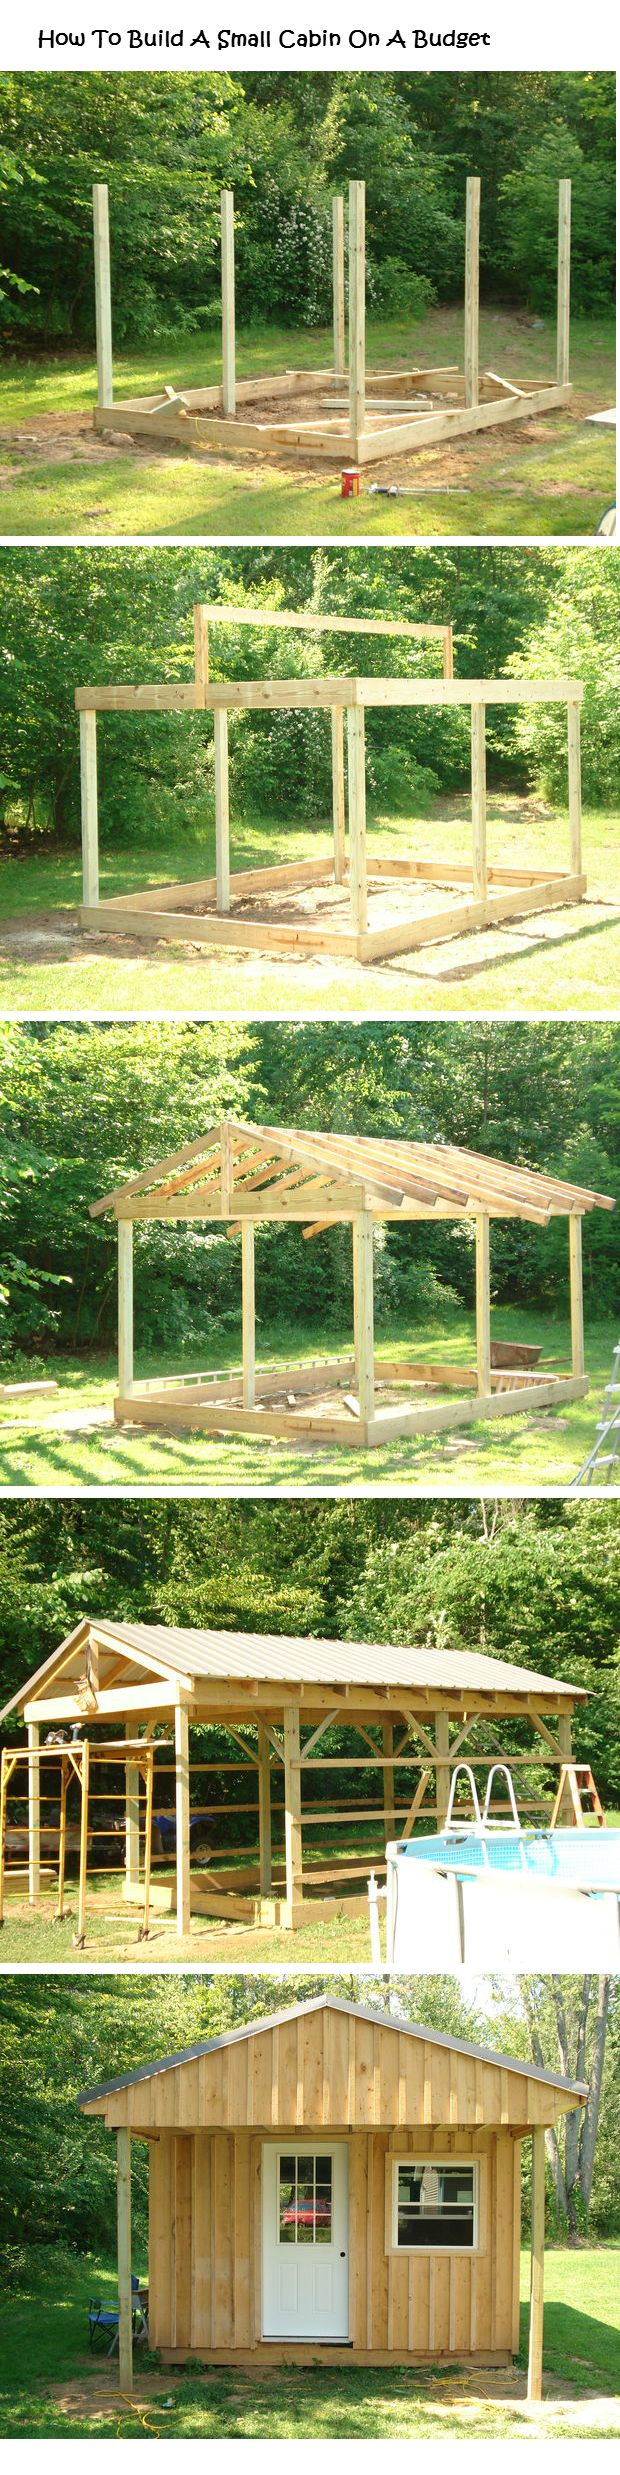 how to build a small wood cabin on a budget cabin budgeting and